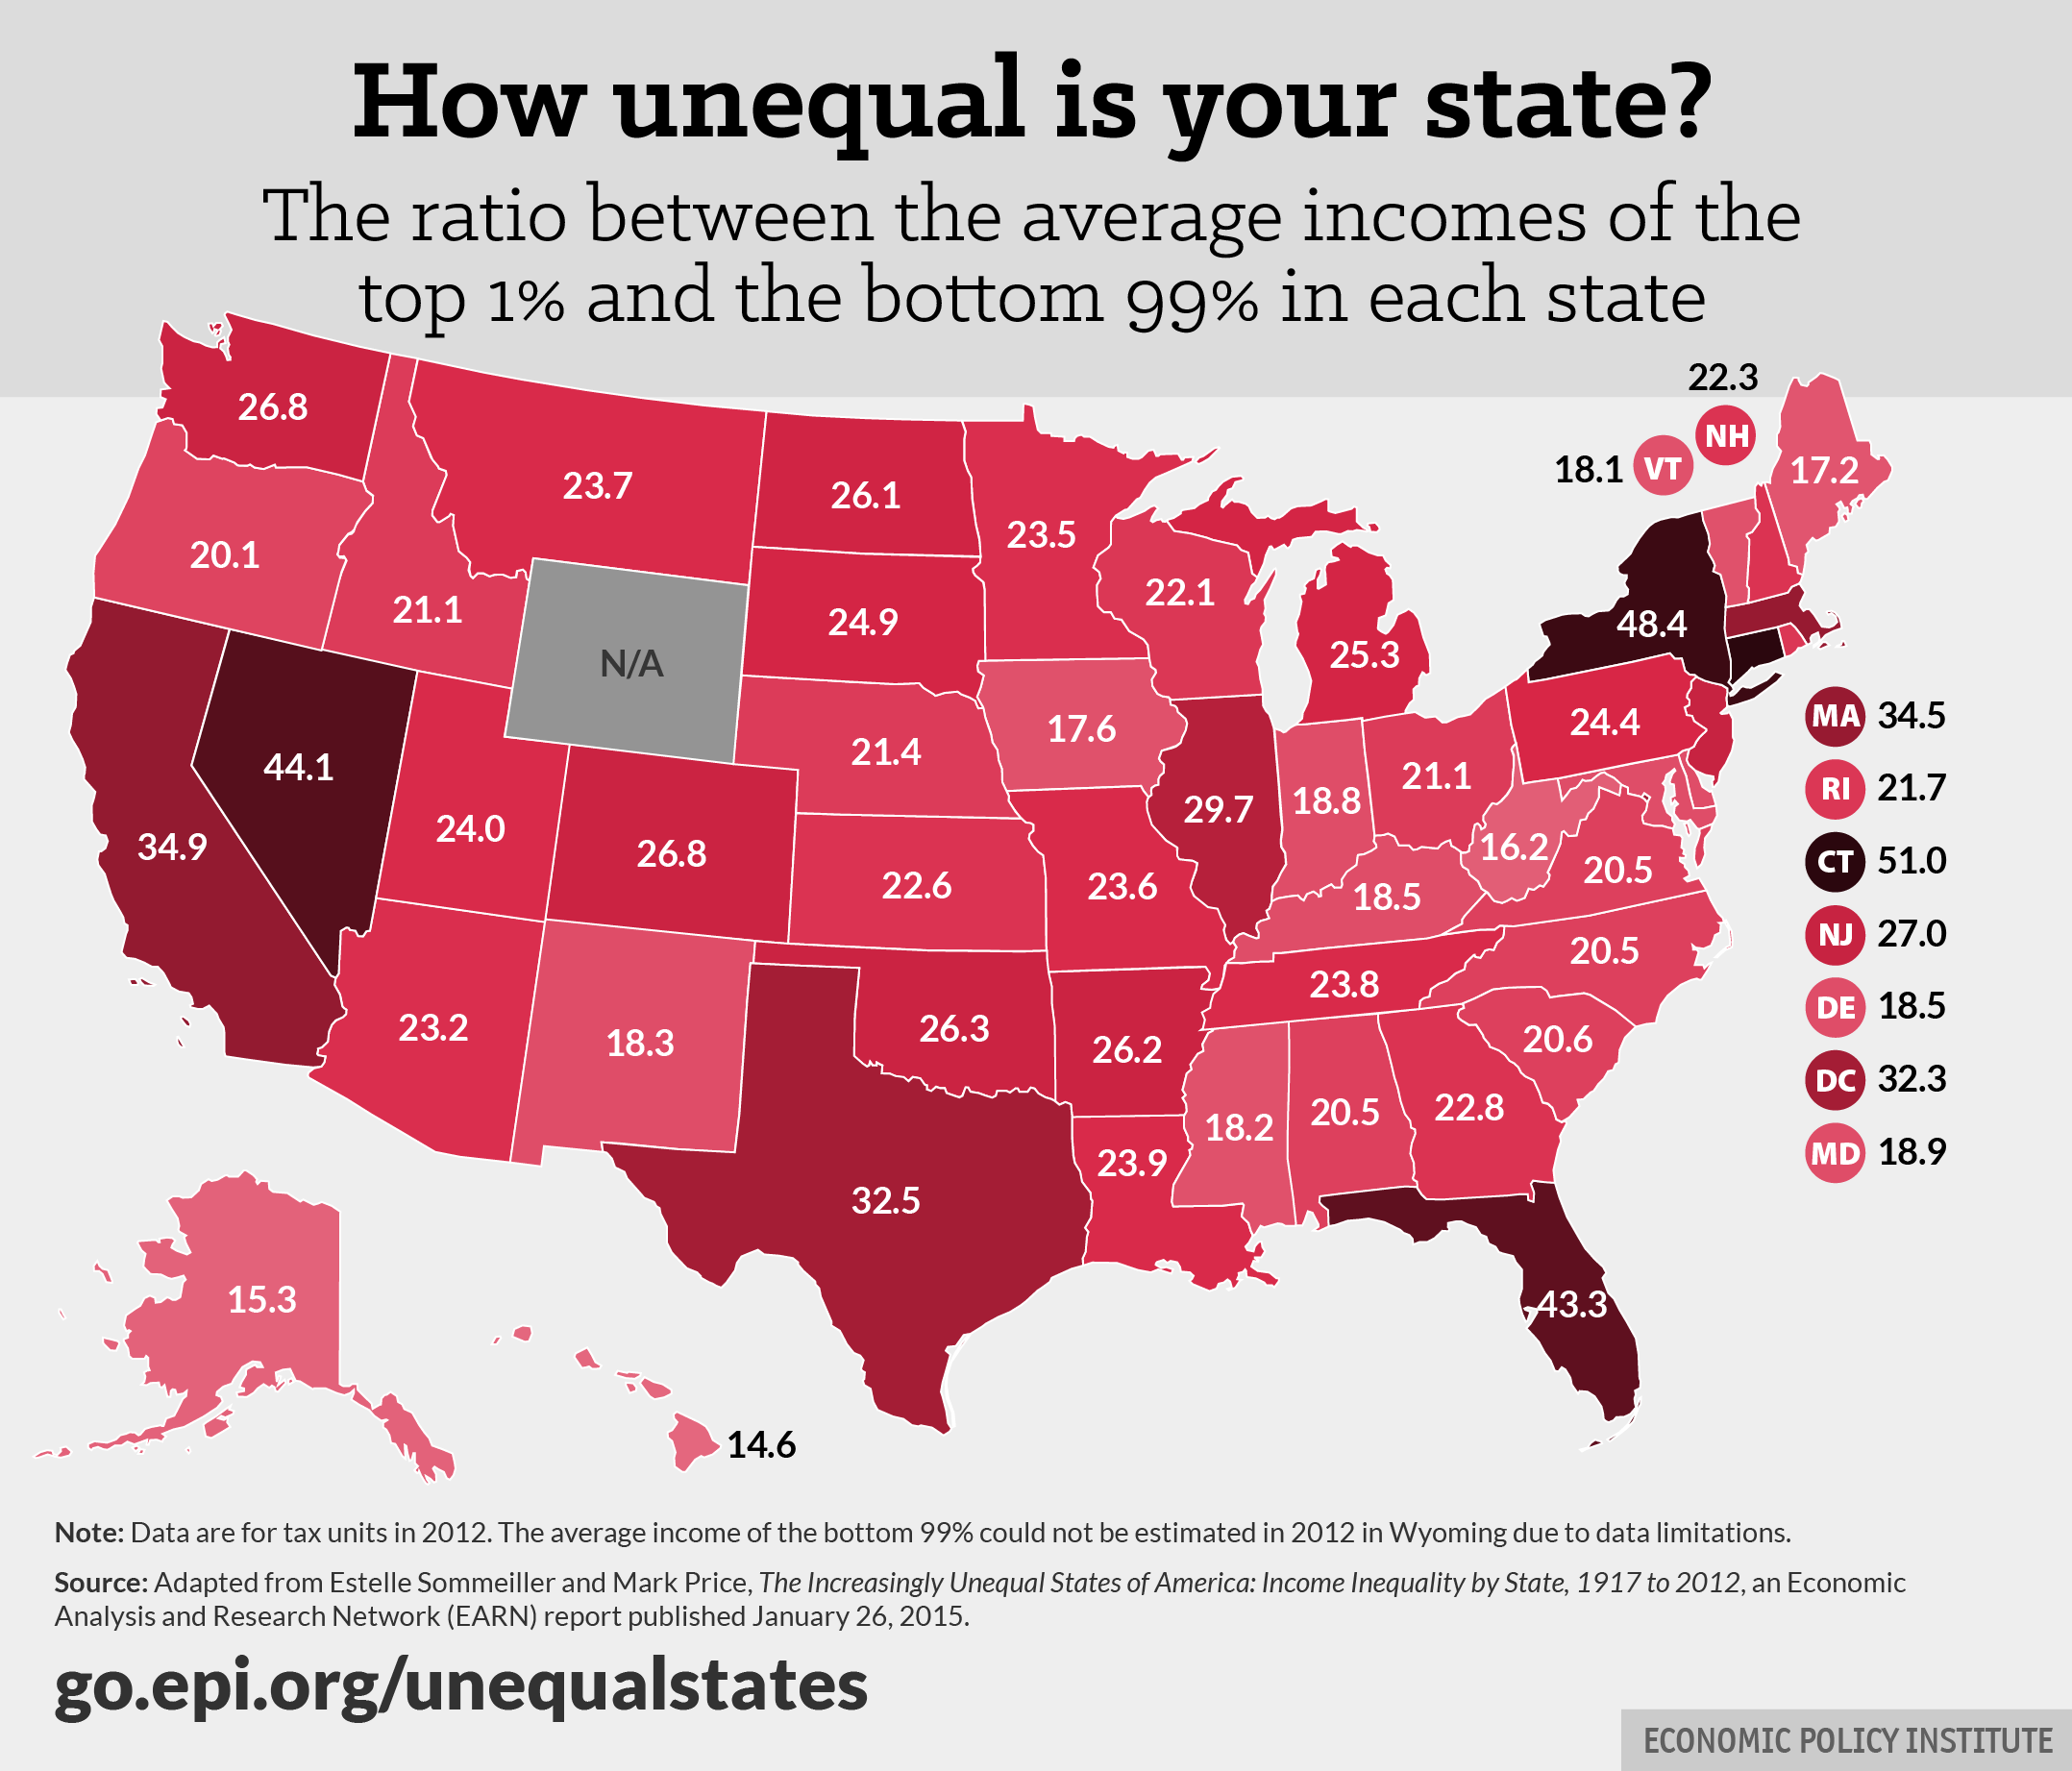 a history of income inequality in the united states But forces of rising inequality are operating throughout the united states, as a new study by researchers at the economic policy institute makes clear the study, which measures income inequality by state, metro area and county, shows that inequality has risen in every state since the 1970s.